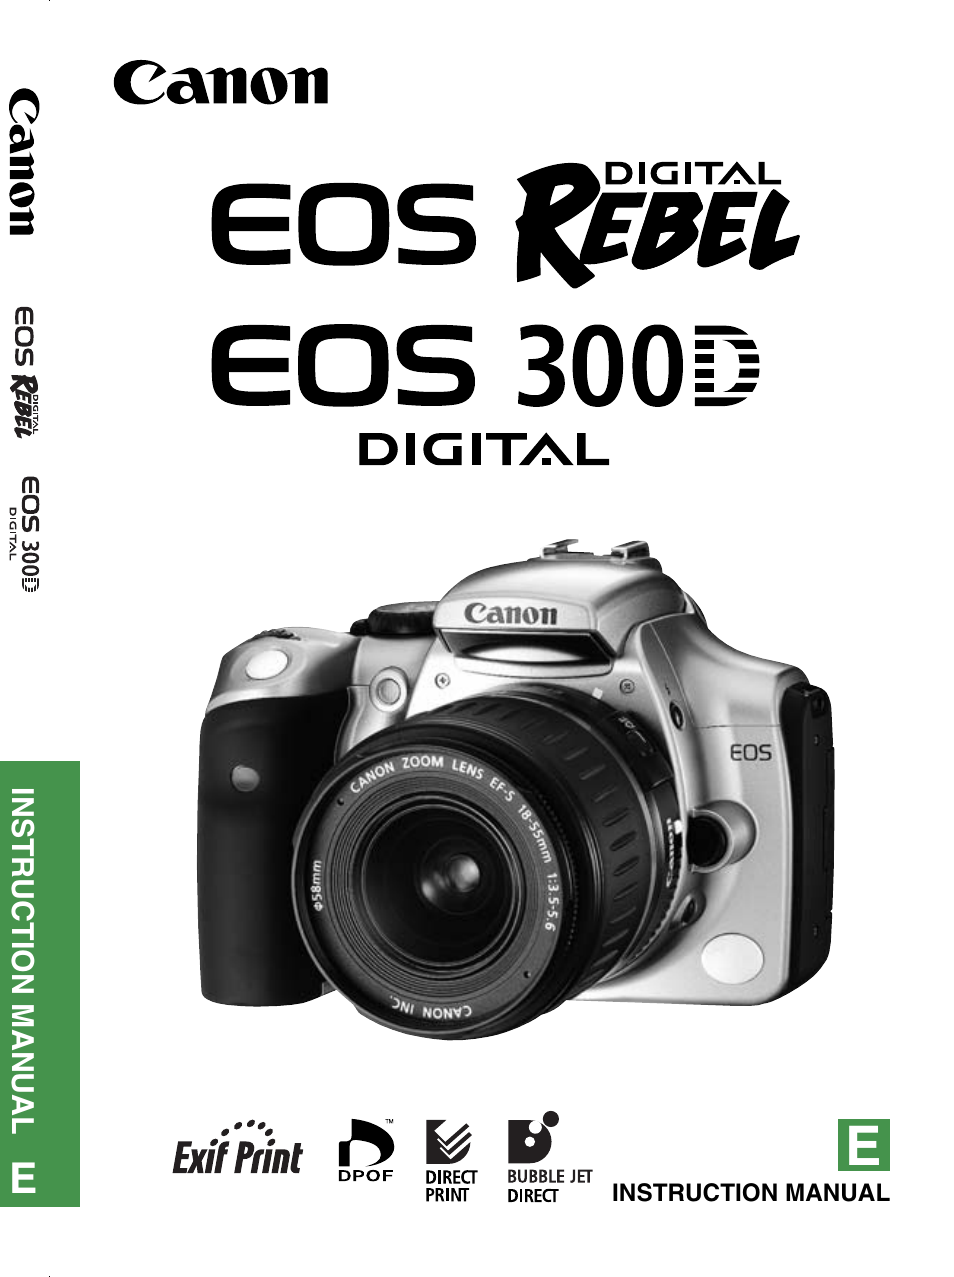 canon eos rebel t1i manual espaol how to and user guide instructions u2022 rh taxibermuda co canon eos rebel t1i manual pdf español canon eos rebel t1i manual pdf español